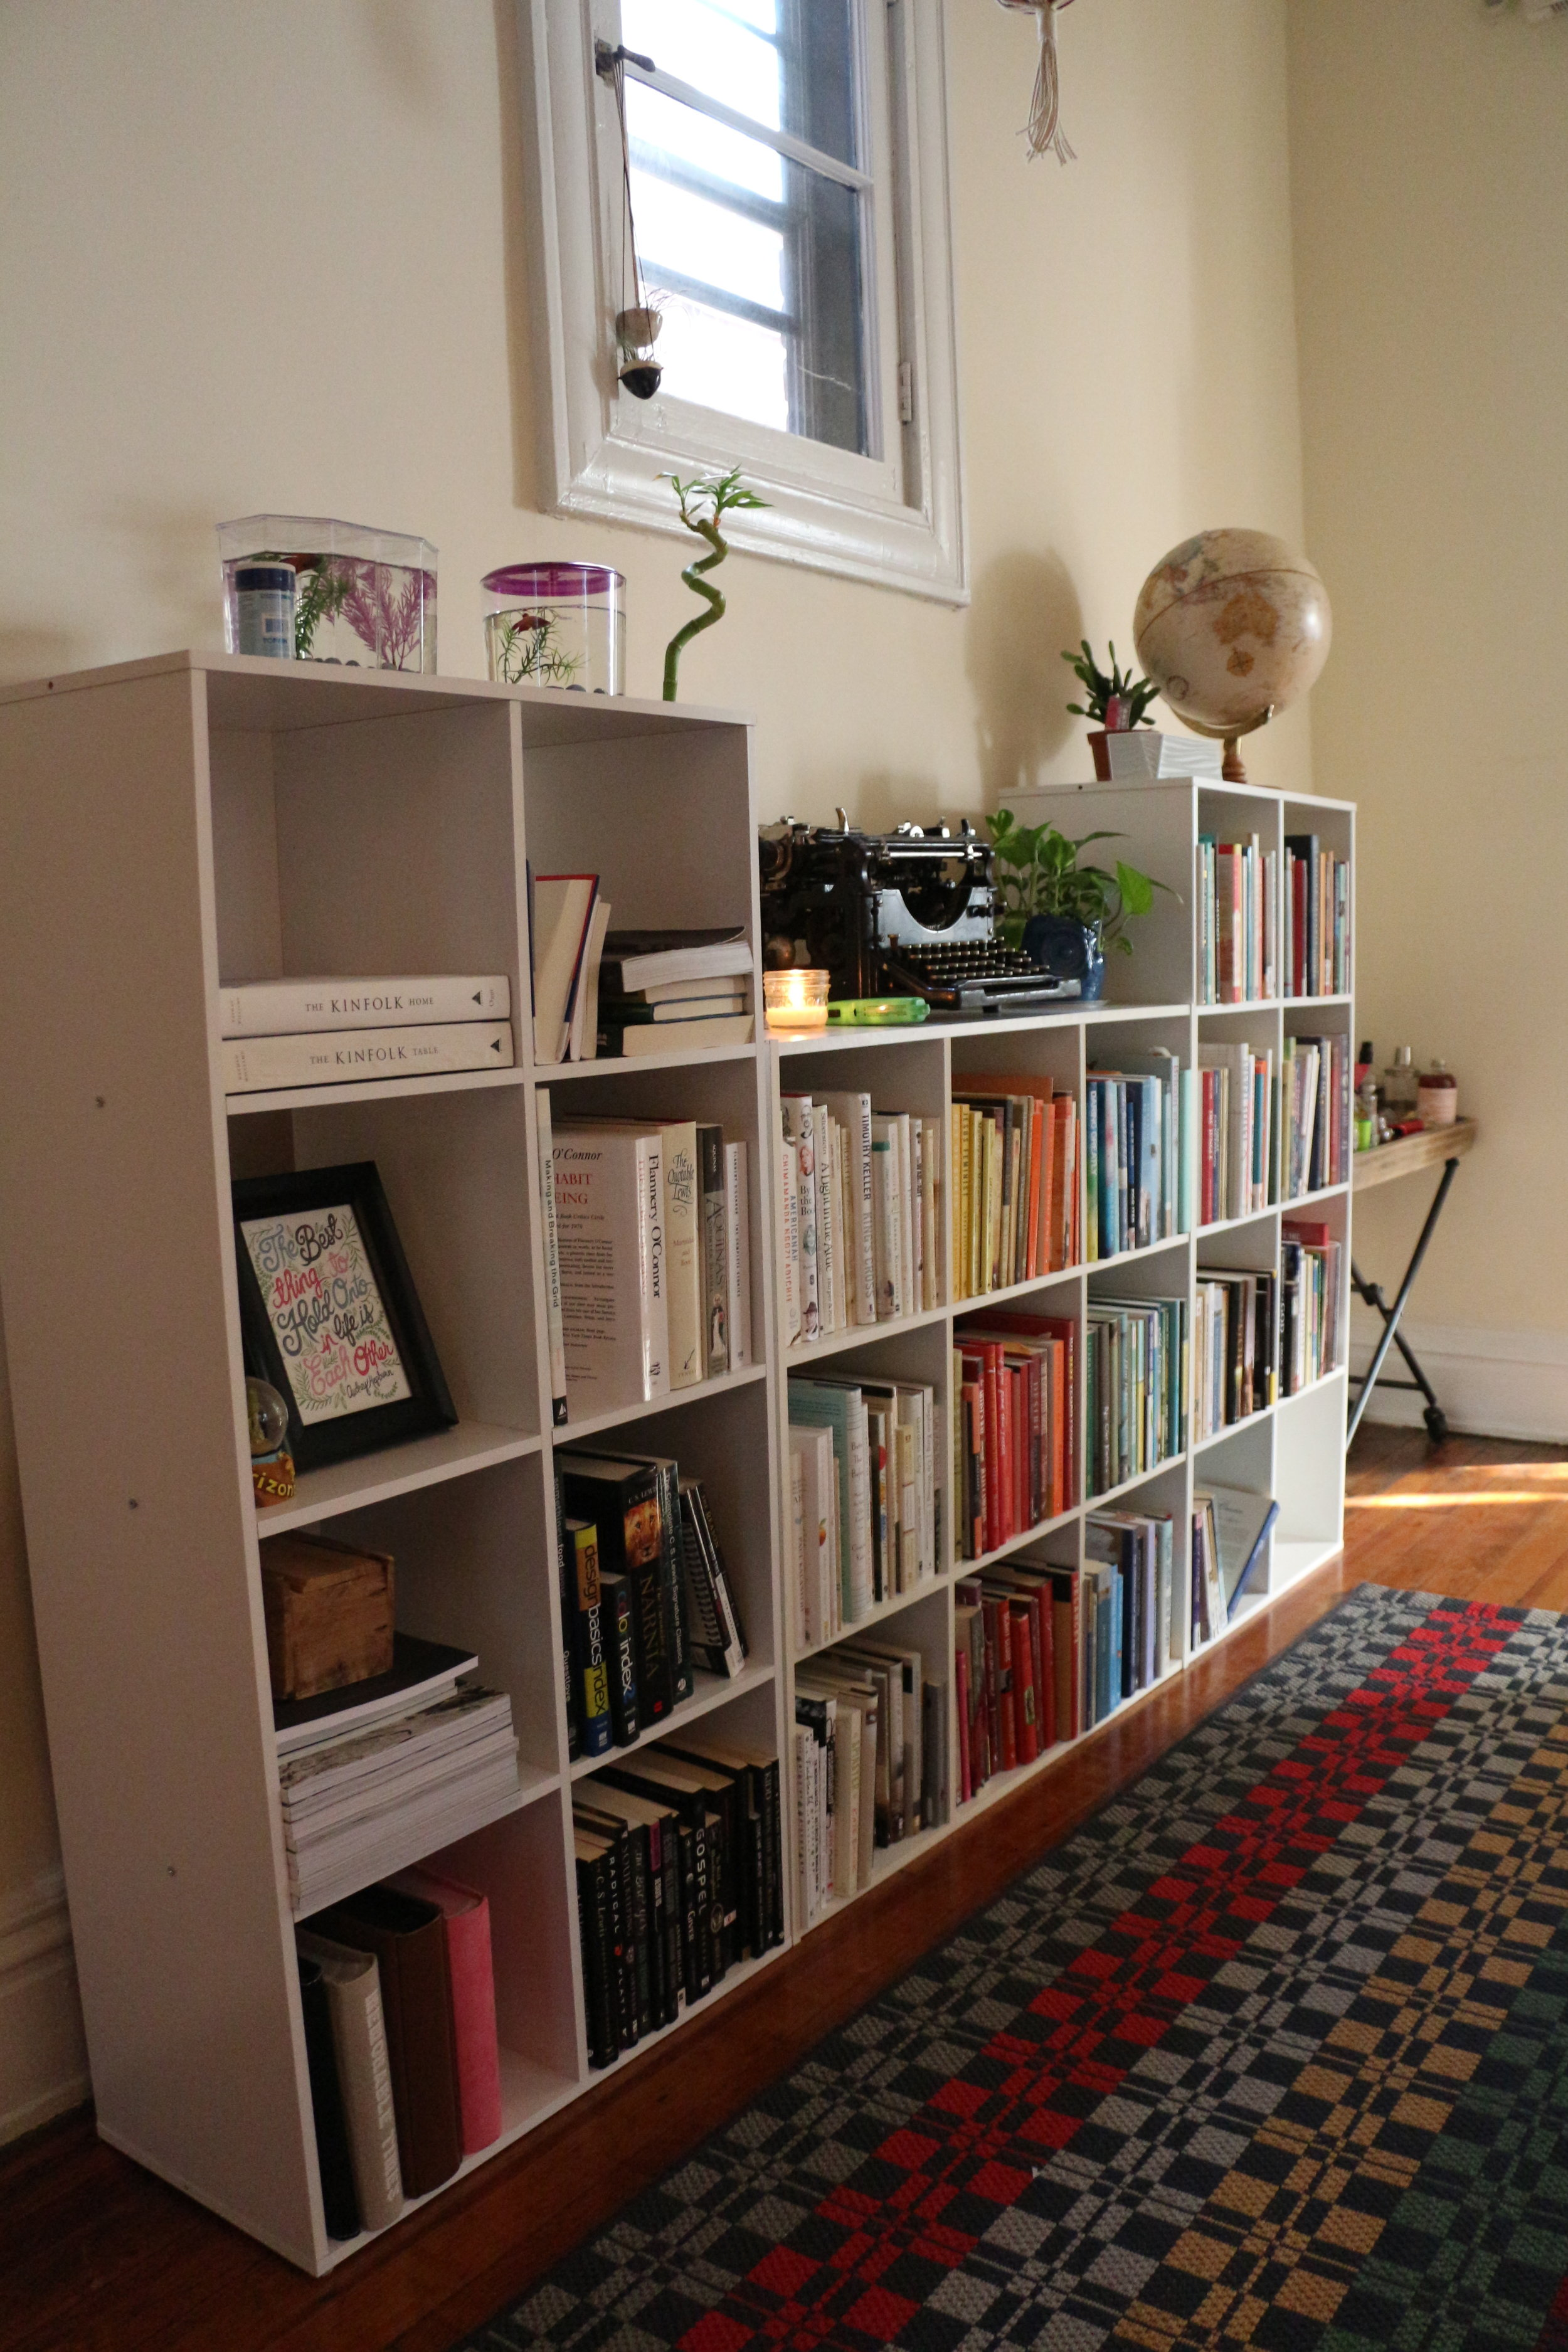 All my books in the hallway outside my room!